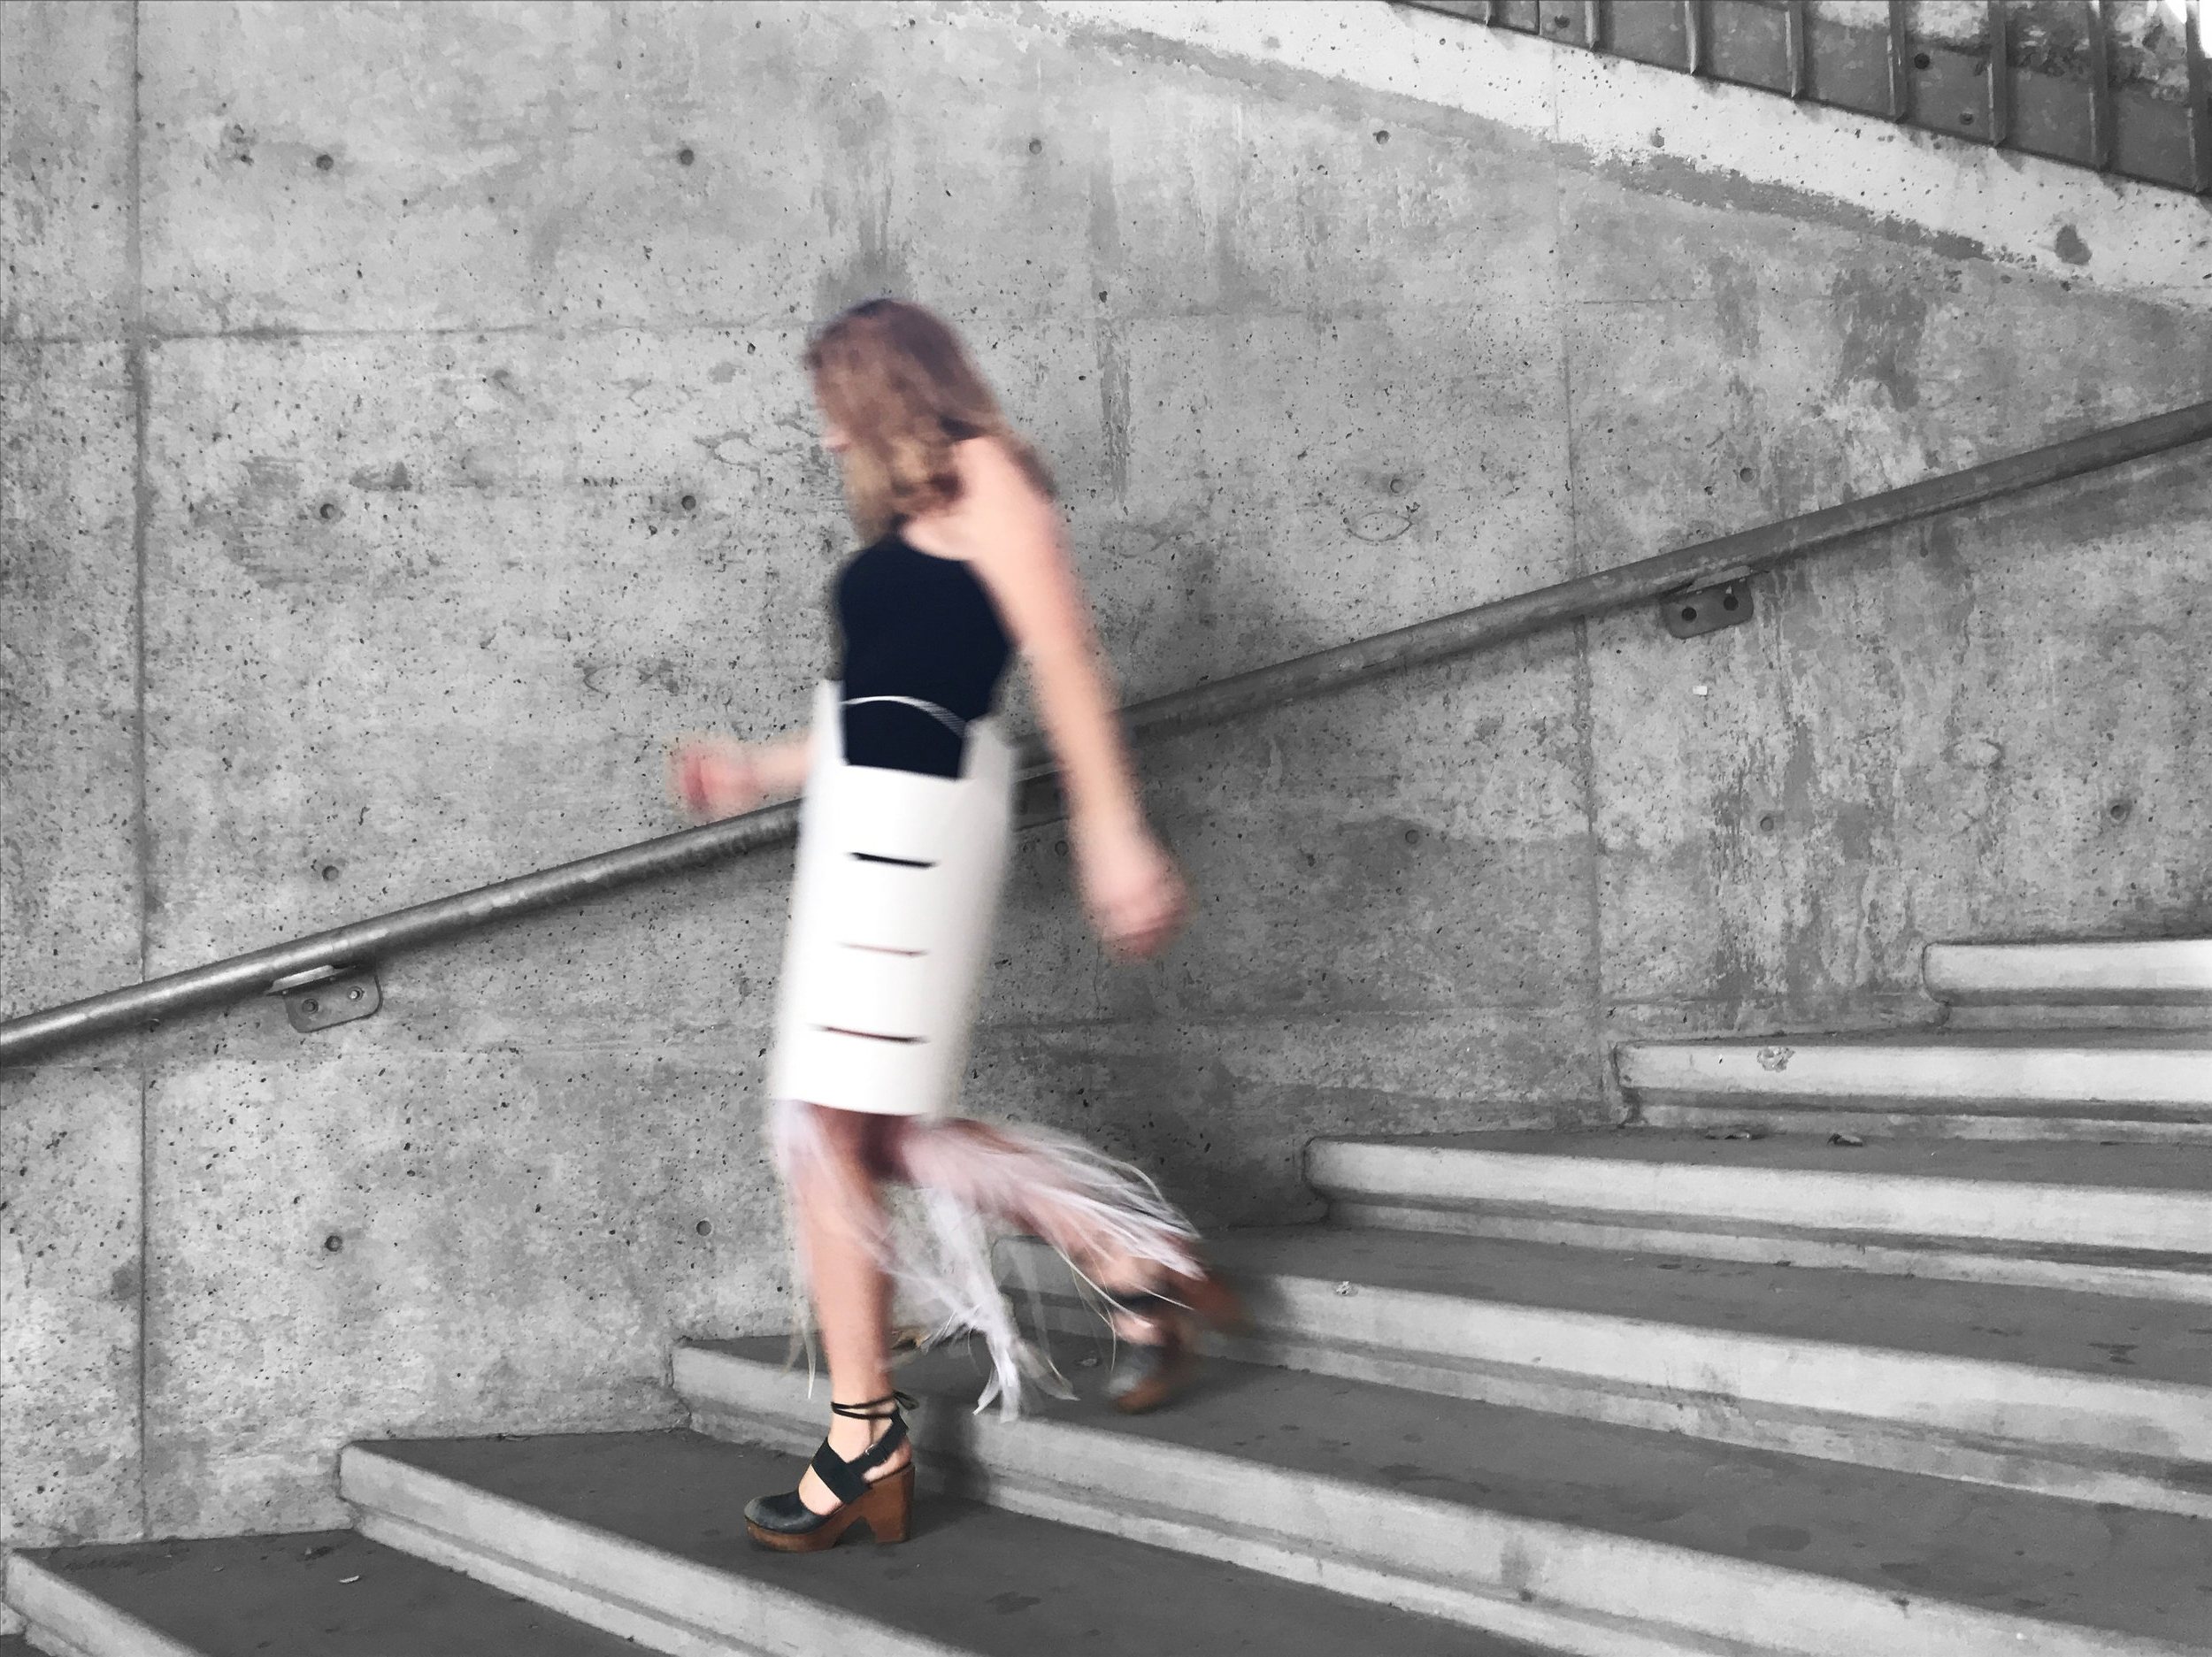 humans - fashion show picture walking down stairs.jpg